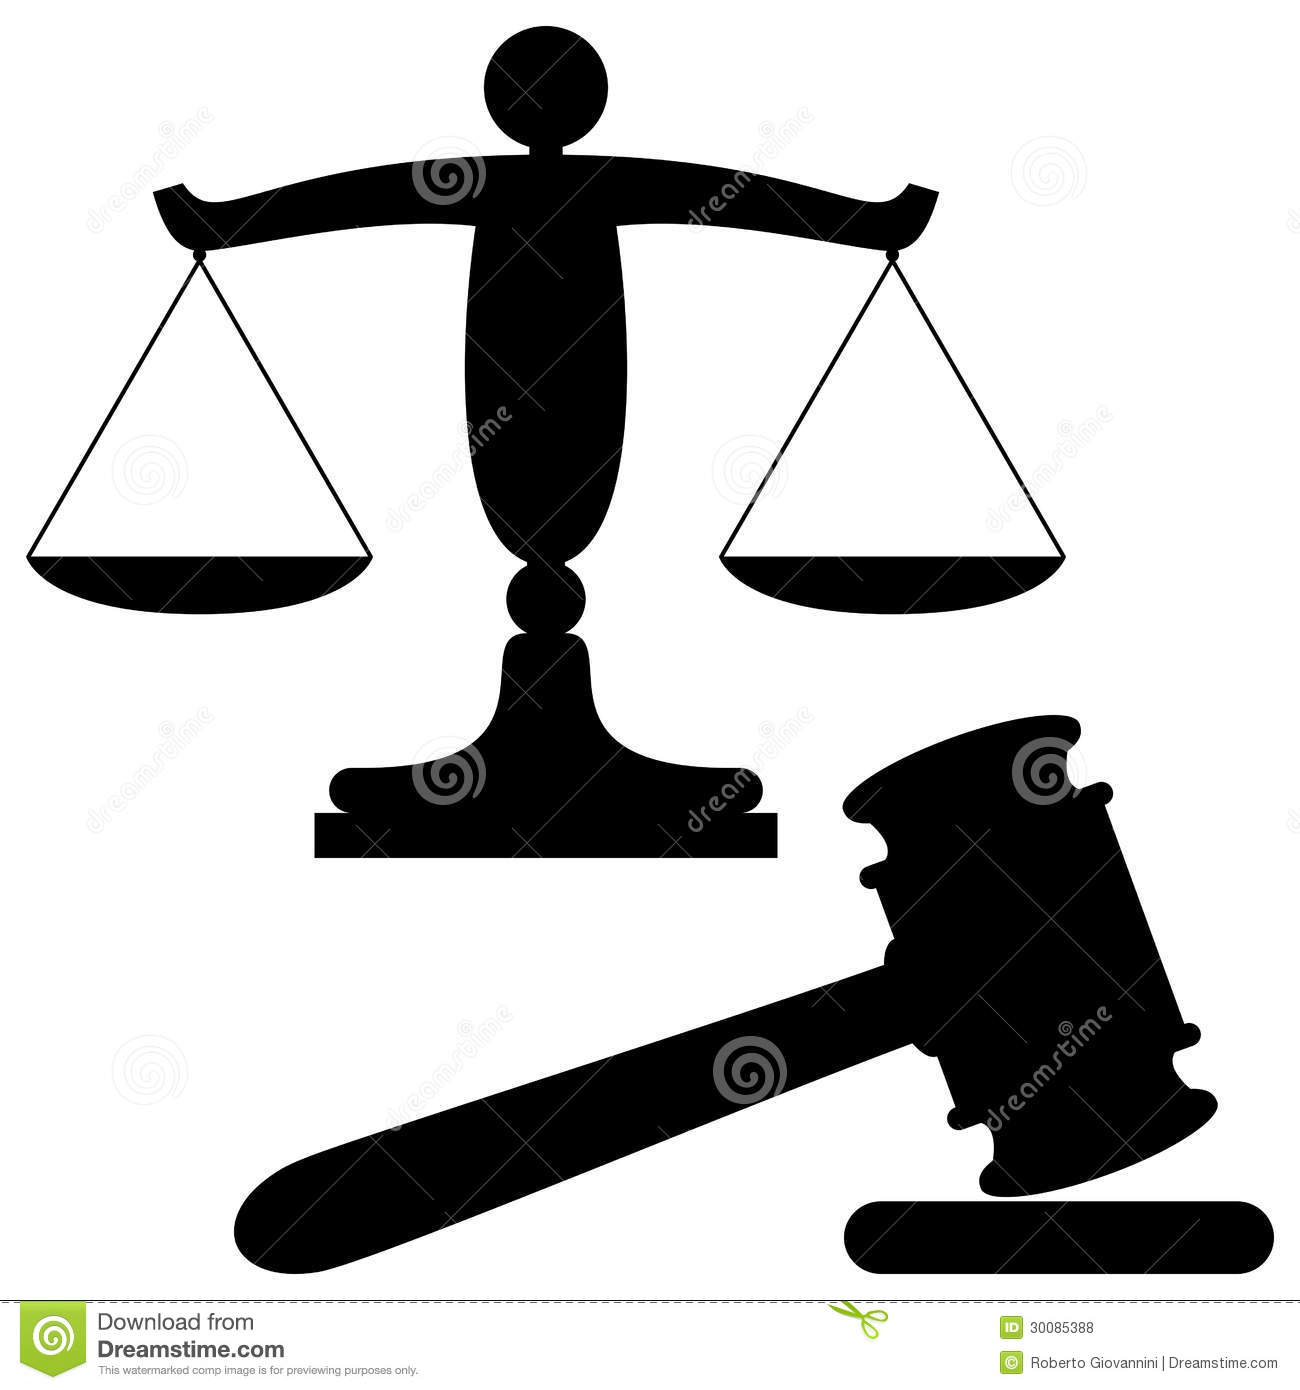 Scales Of Justice And Gavel Black Silhouette Symbols Isolated On